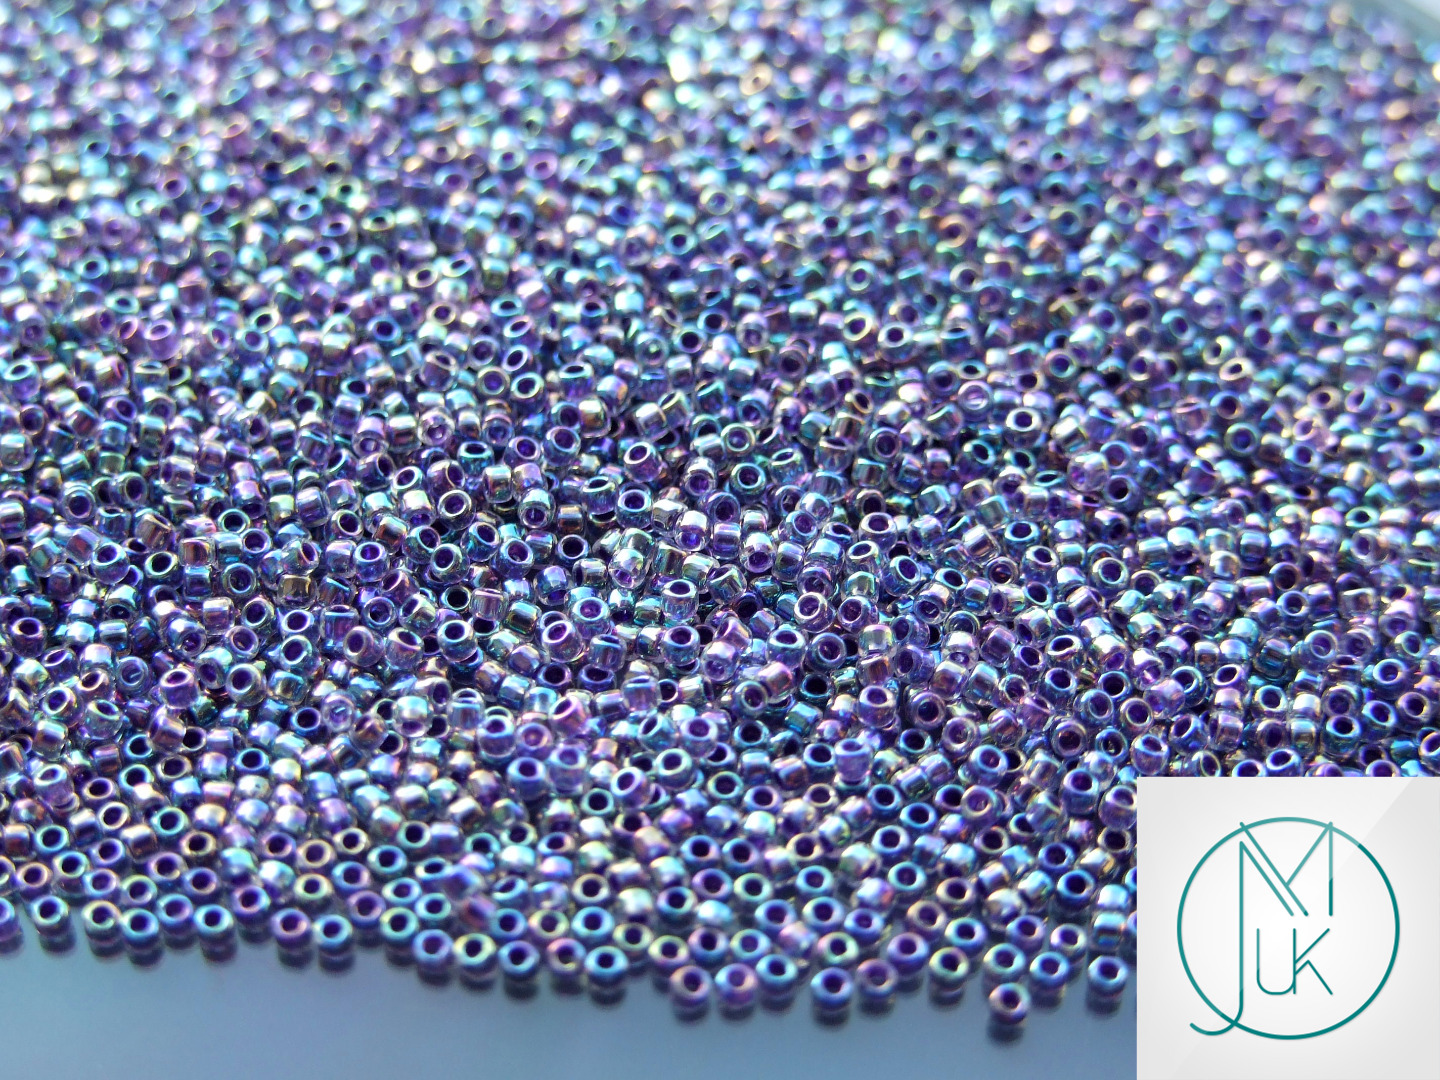 10g-Toho-Japanese-Seed-Beads-Size-15-0-1-5mm-185-Colors-To-Choose miniature 100